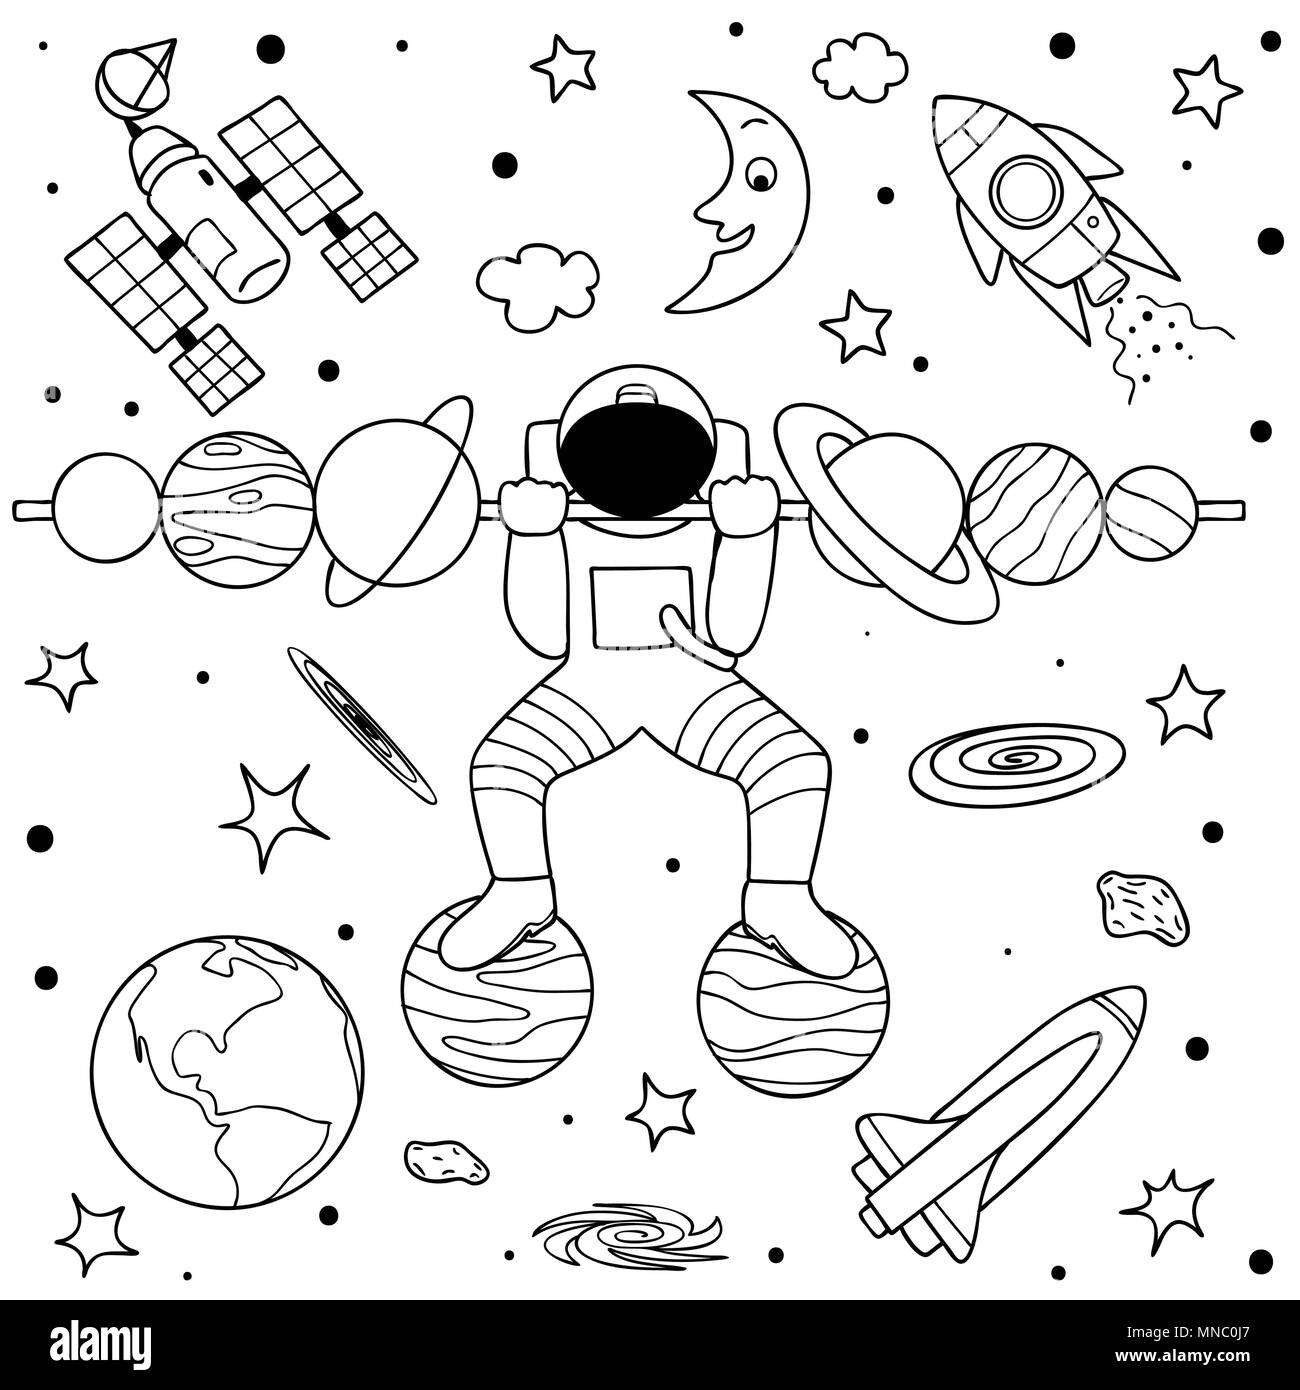 Solar System Planets For Kids Stock Photos & Solar System